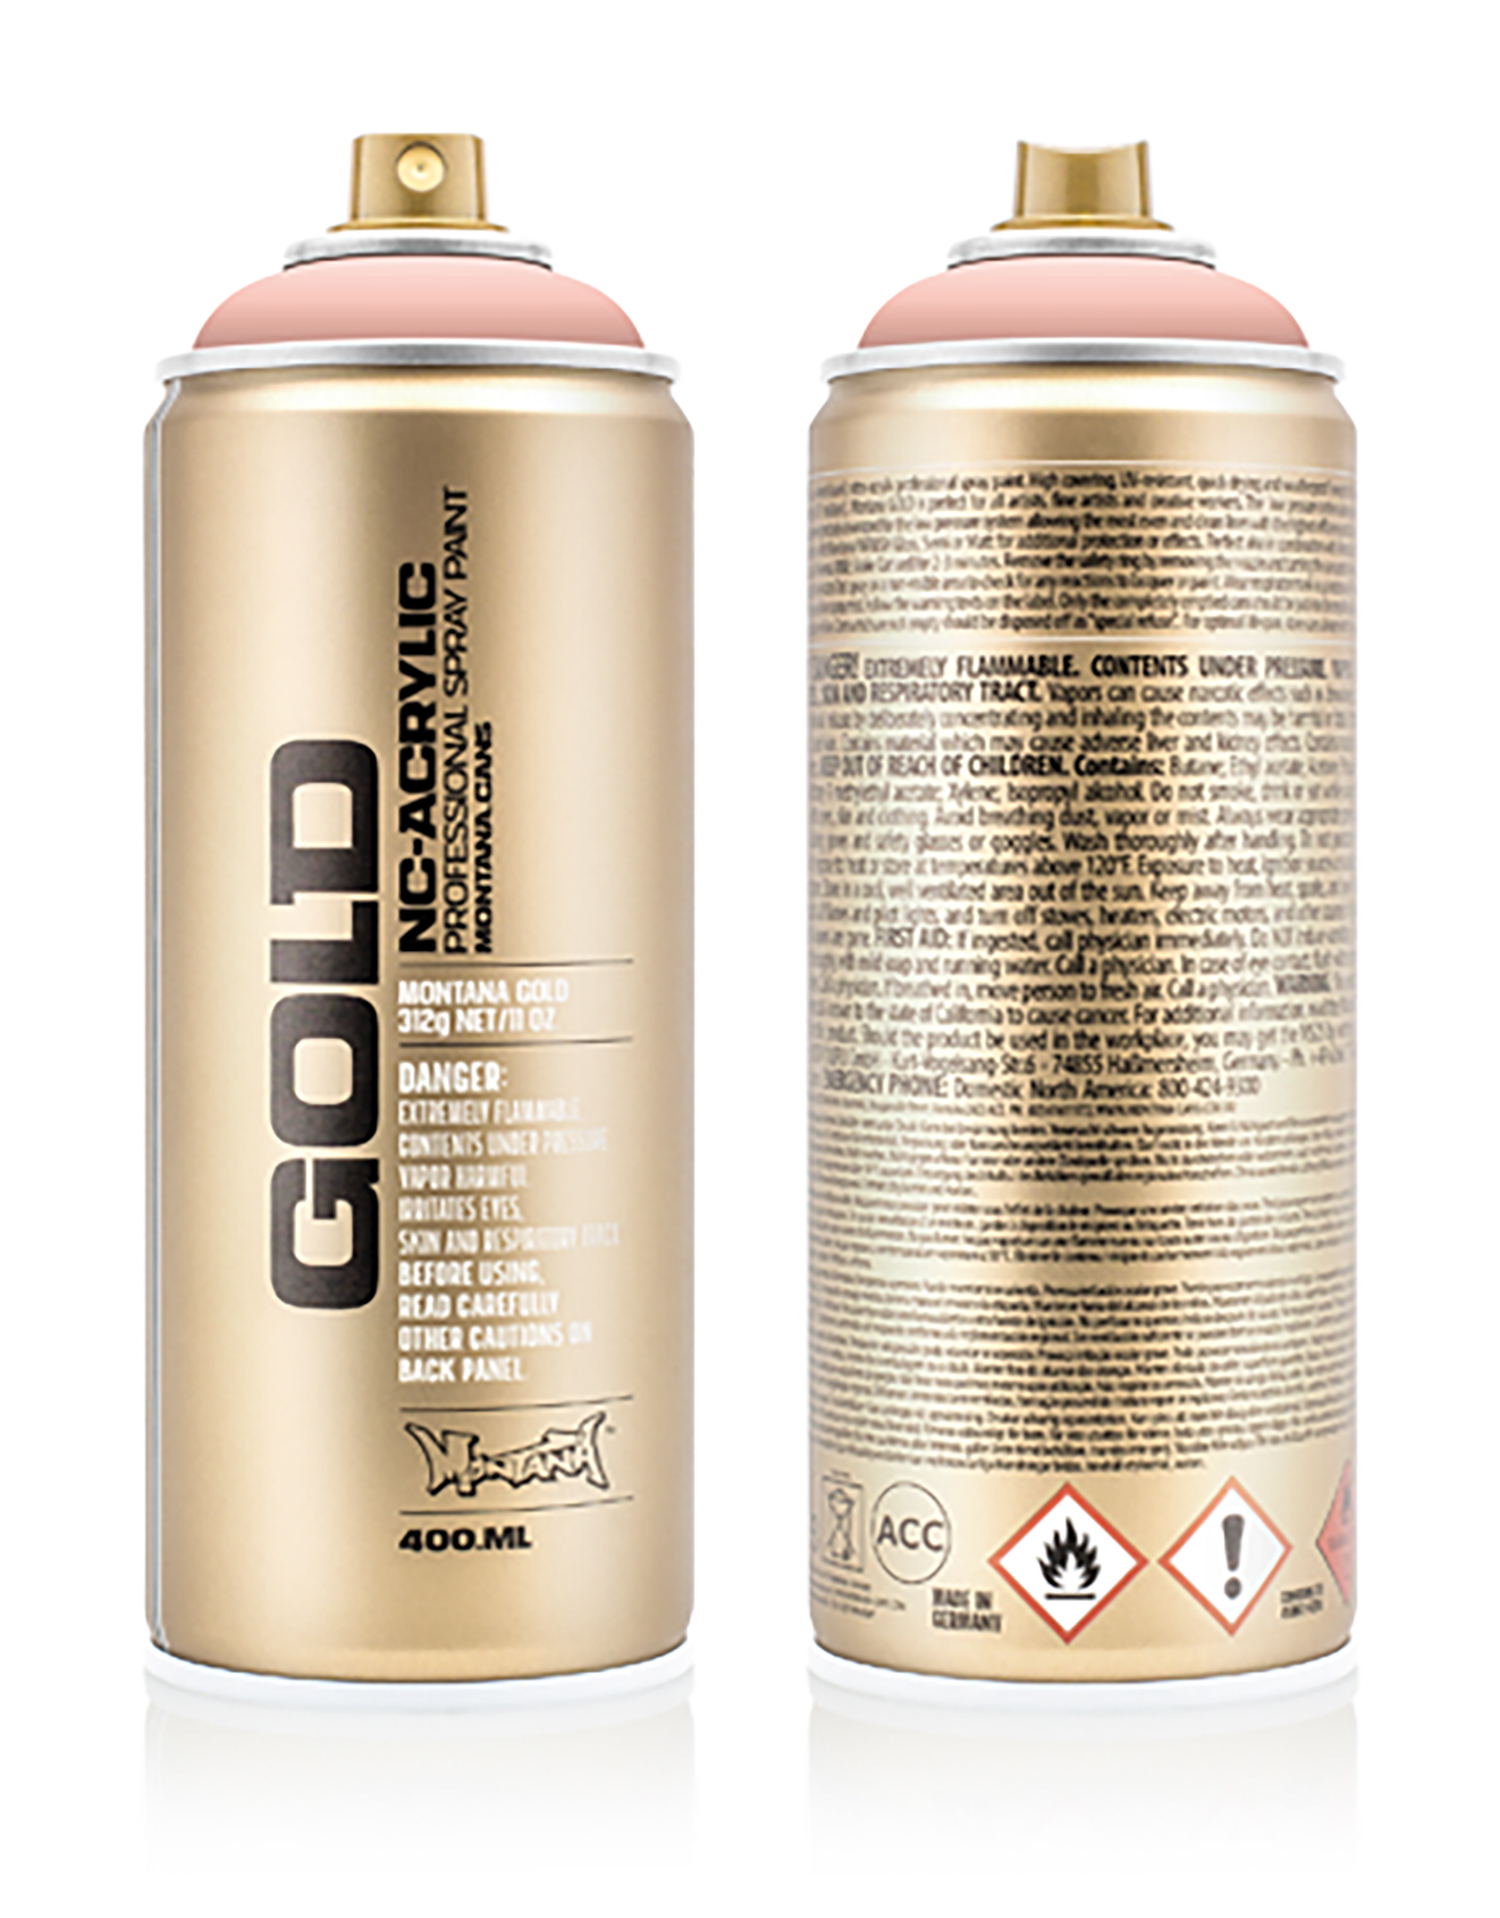 MONTANA-GOLD-SPRAY-400ML-CL-2100